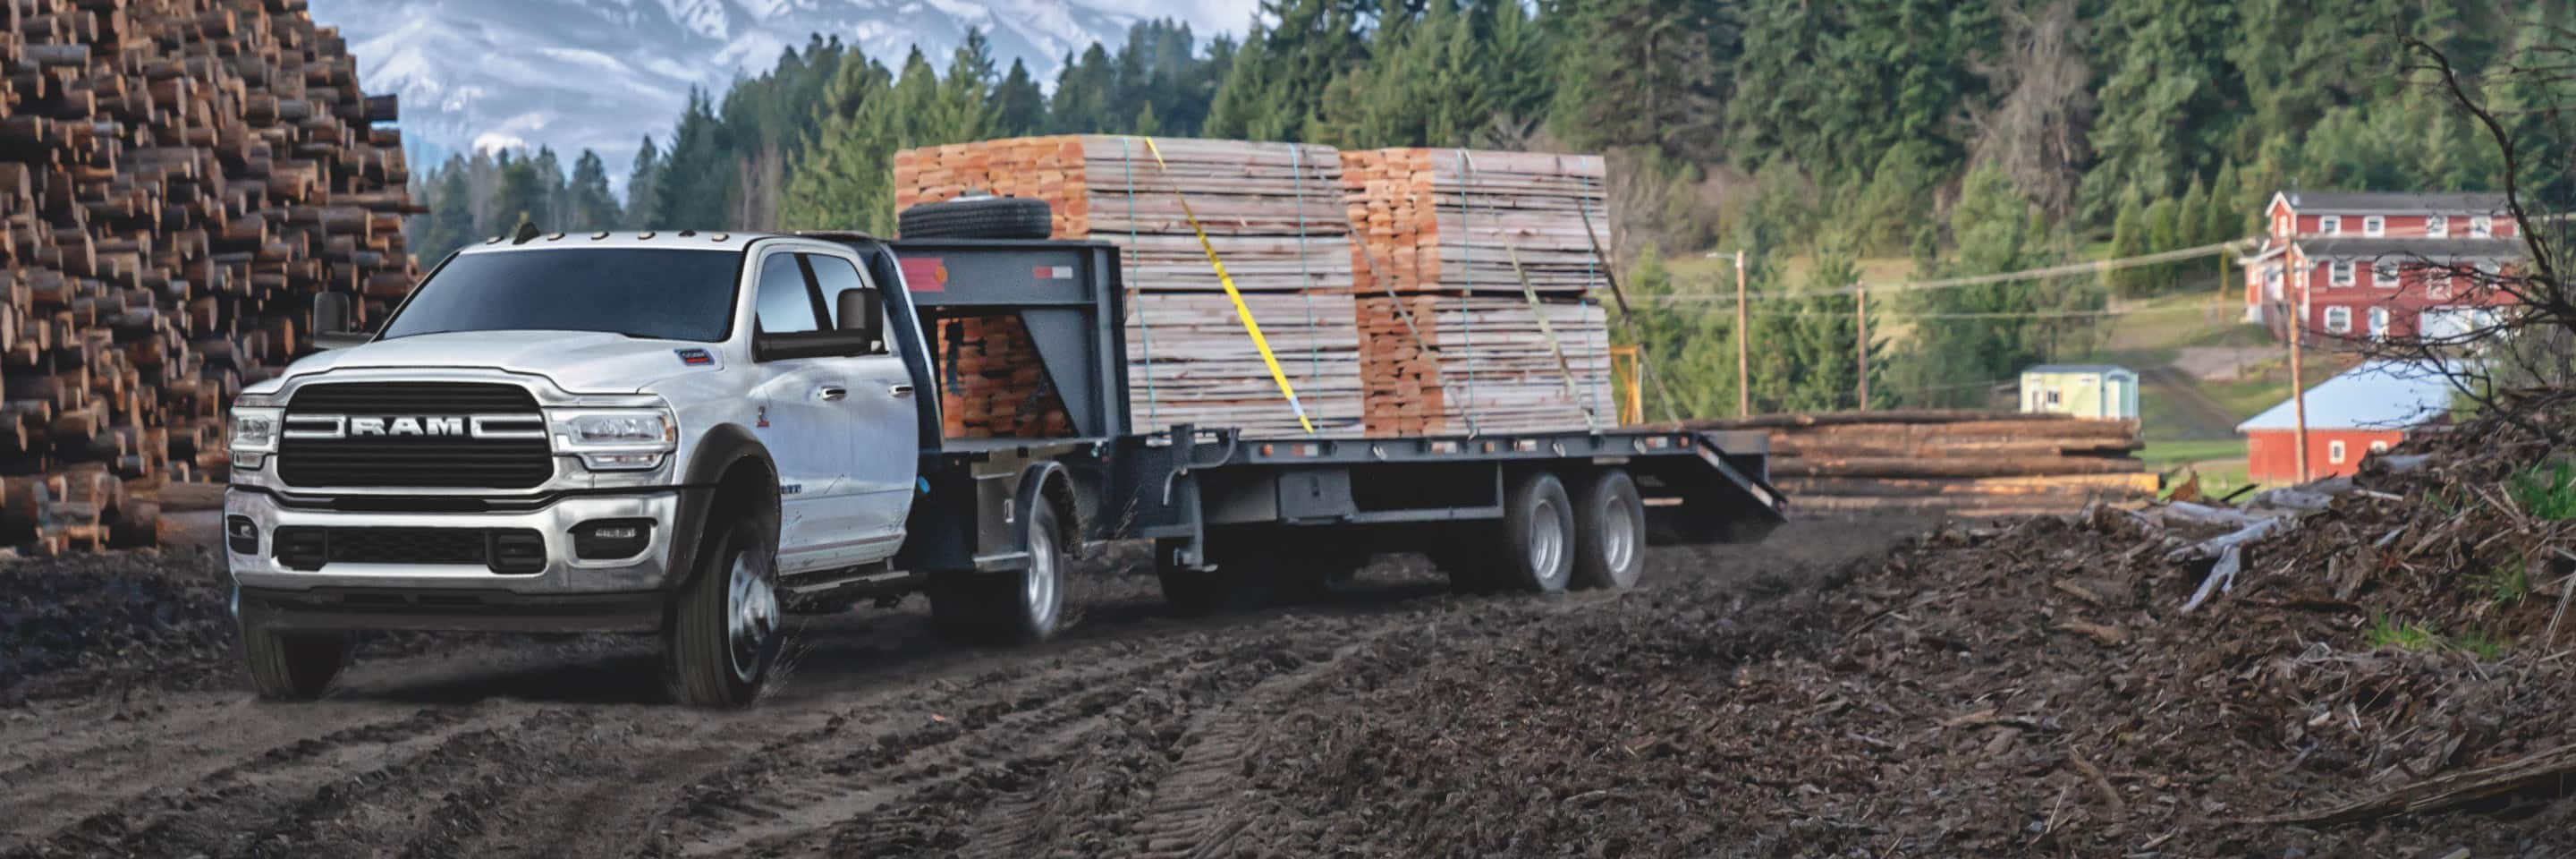 A 2020 Ram 5500 Chassis Cab SLT at a logging camp, towing a trailer filled with lumber.